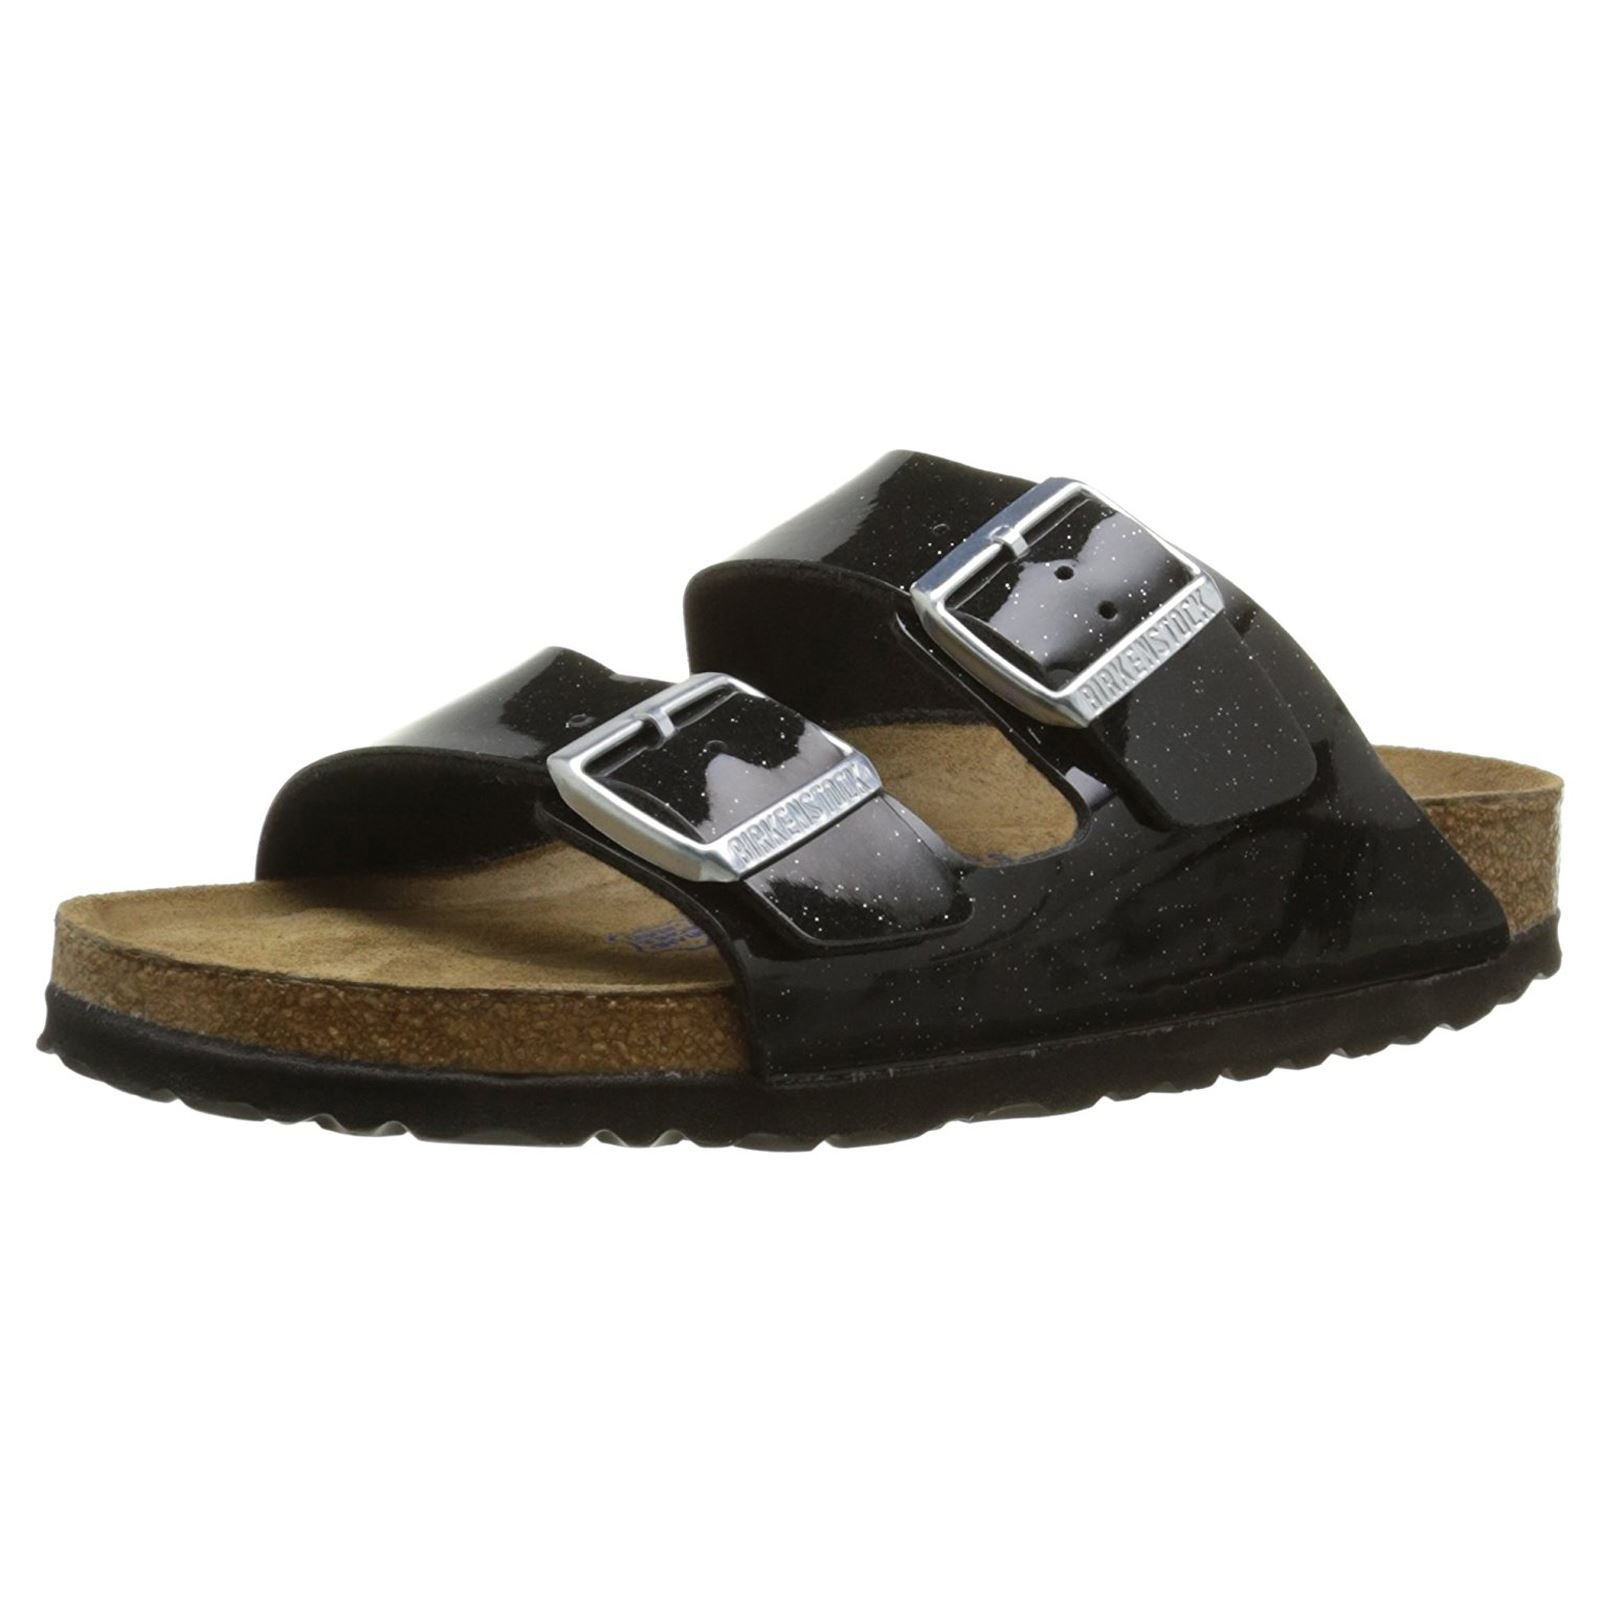 Birkenstock Womens Arizona Soft Footbed Magic Galaxy Black Synthetic Sandals 38 EU